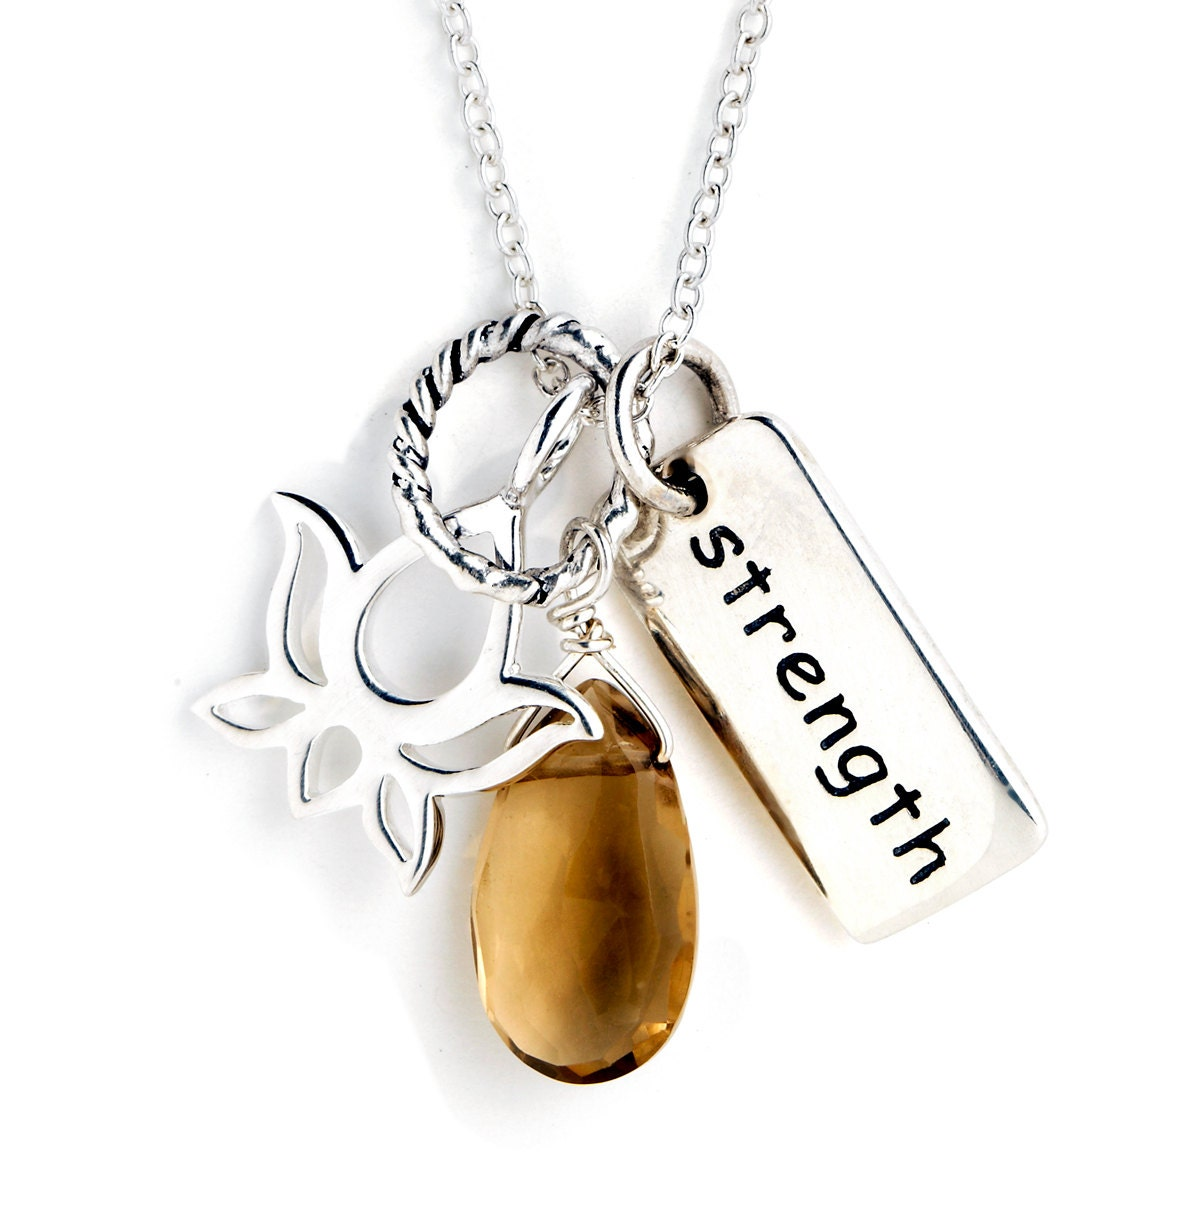 sterling silver charm necklace strength charm lotus flower